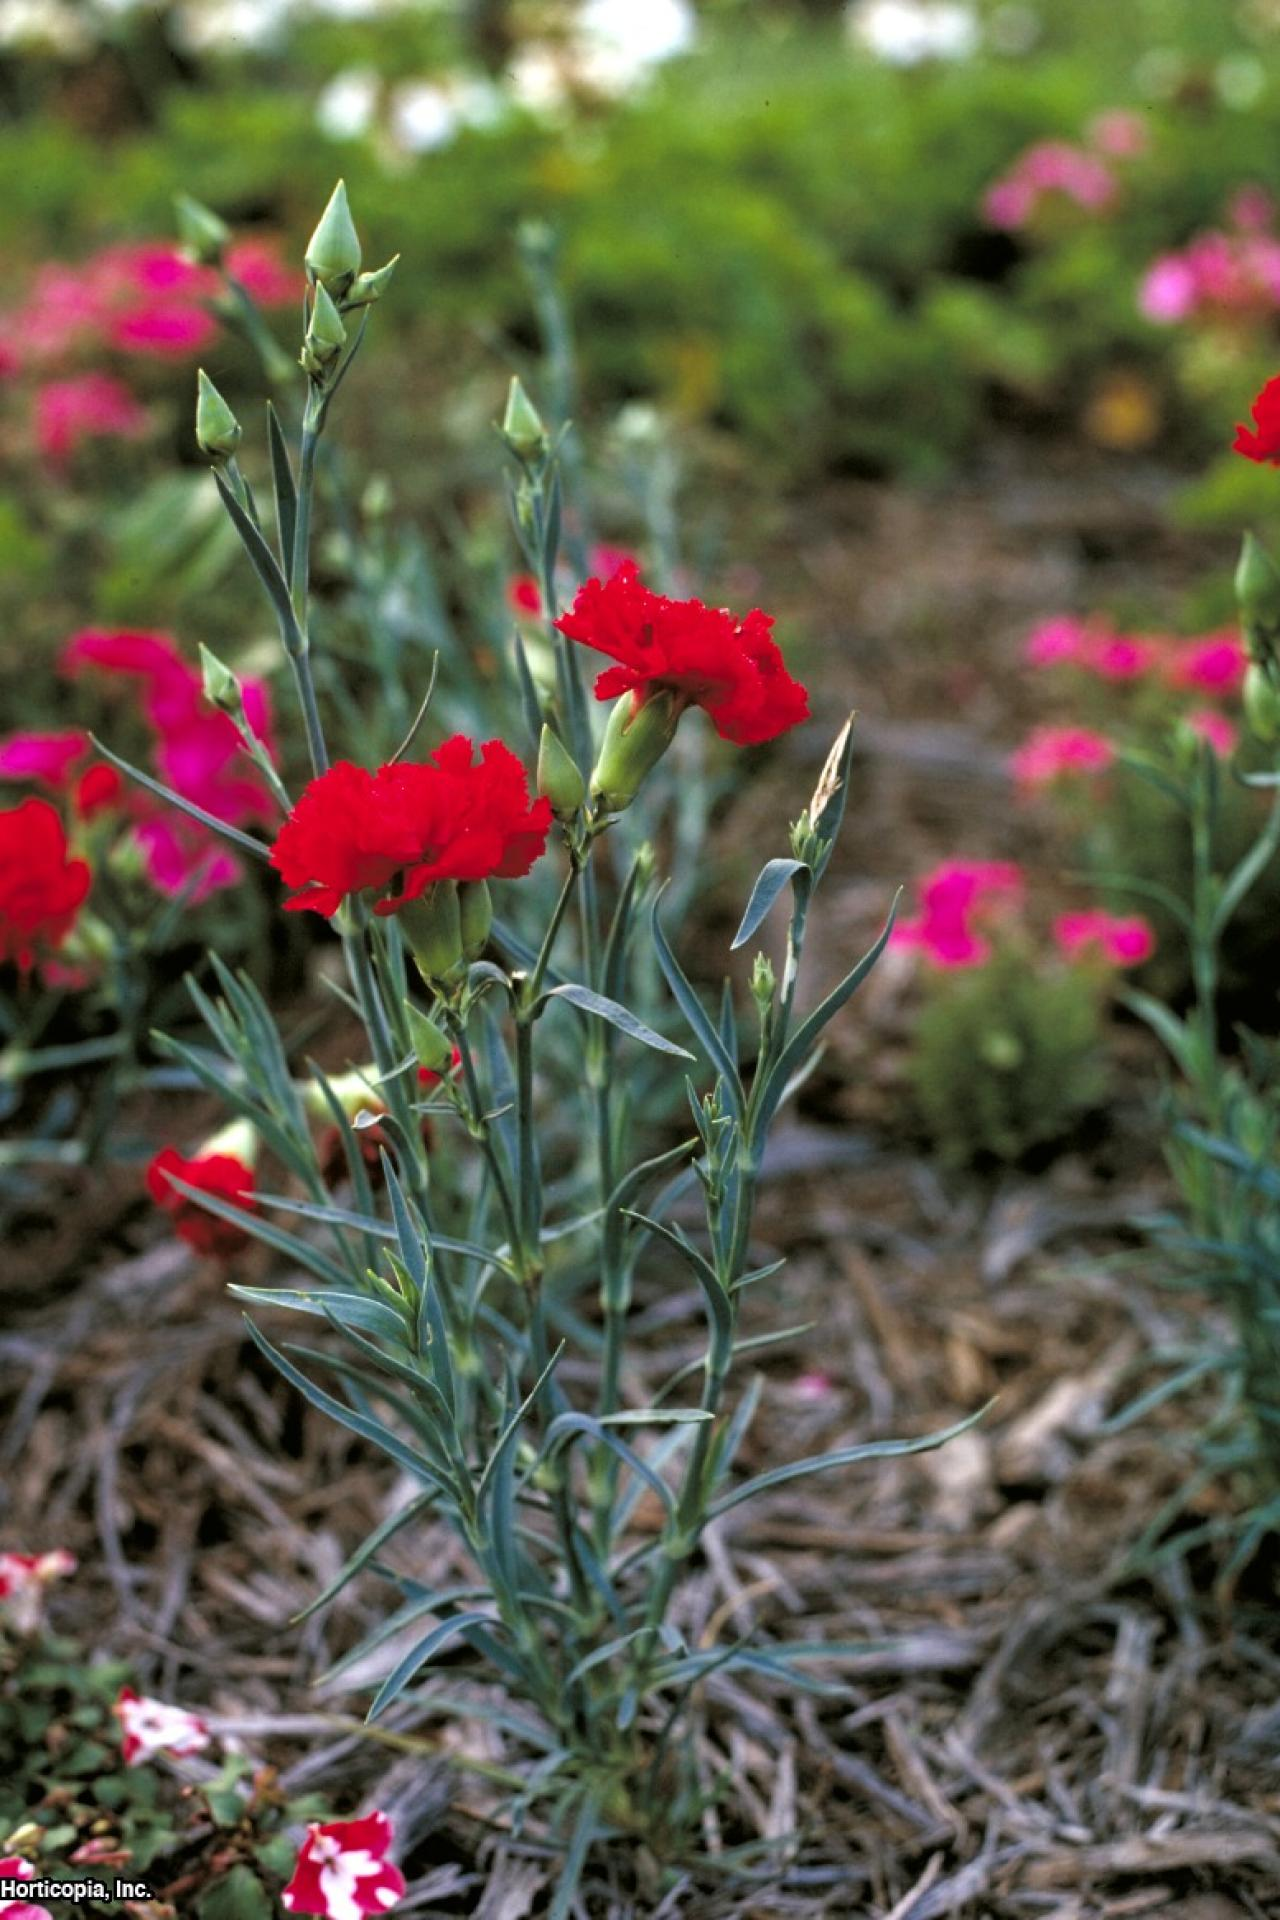 Carnation Flower Plant Growing Carnations | Hgtv